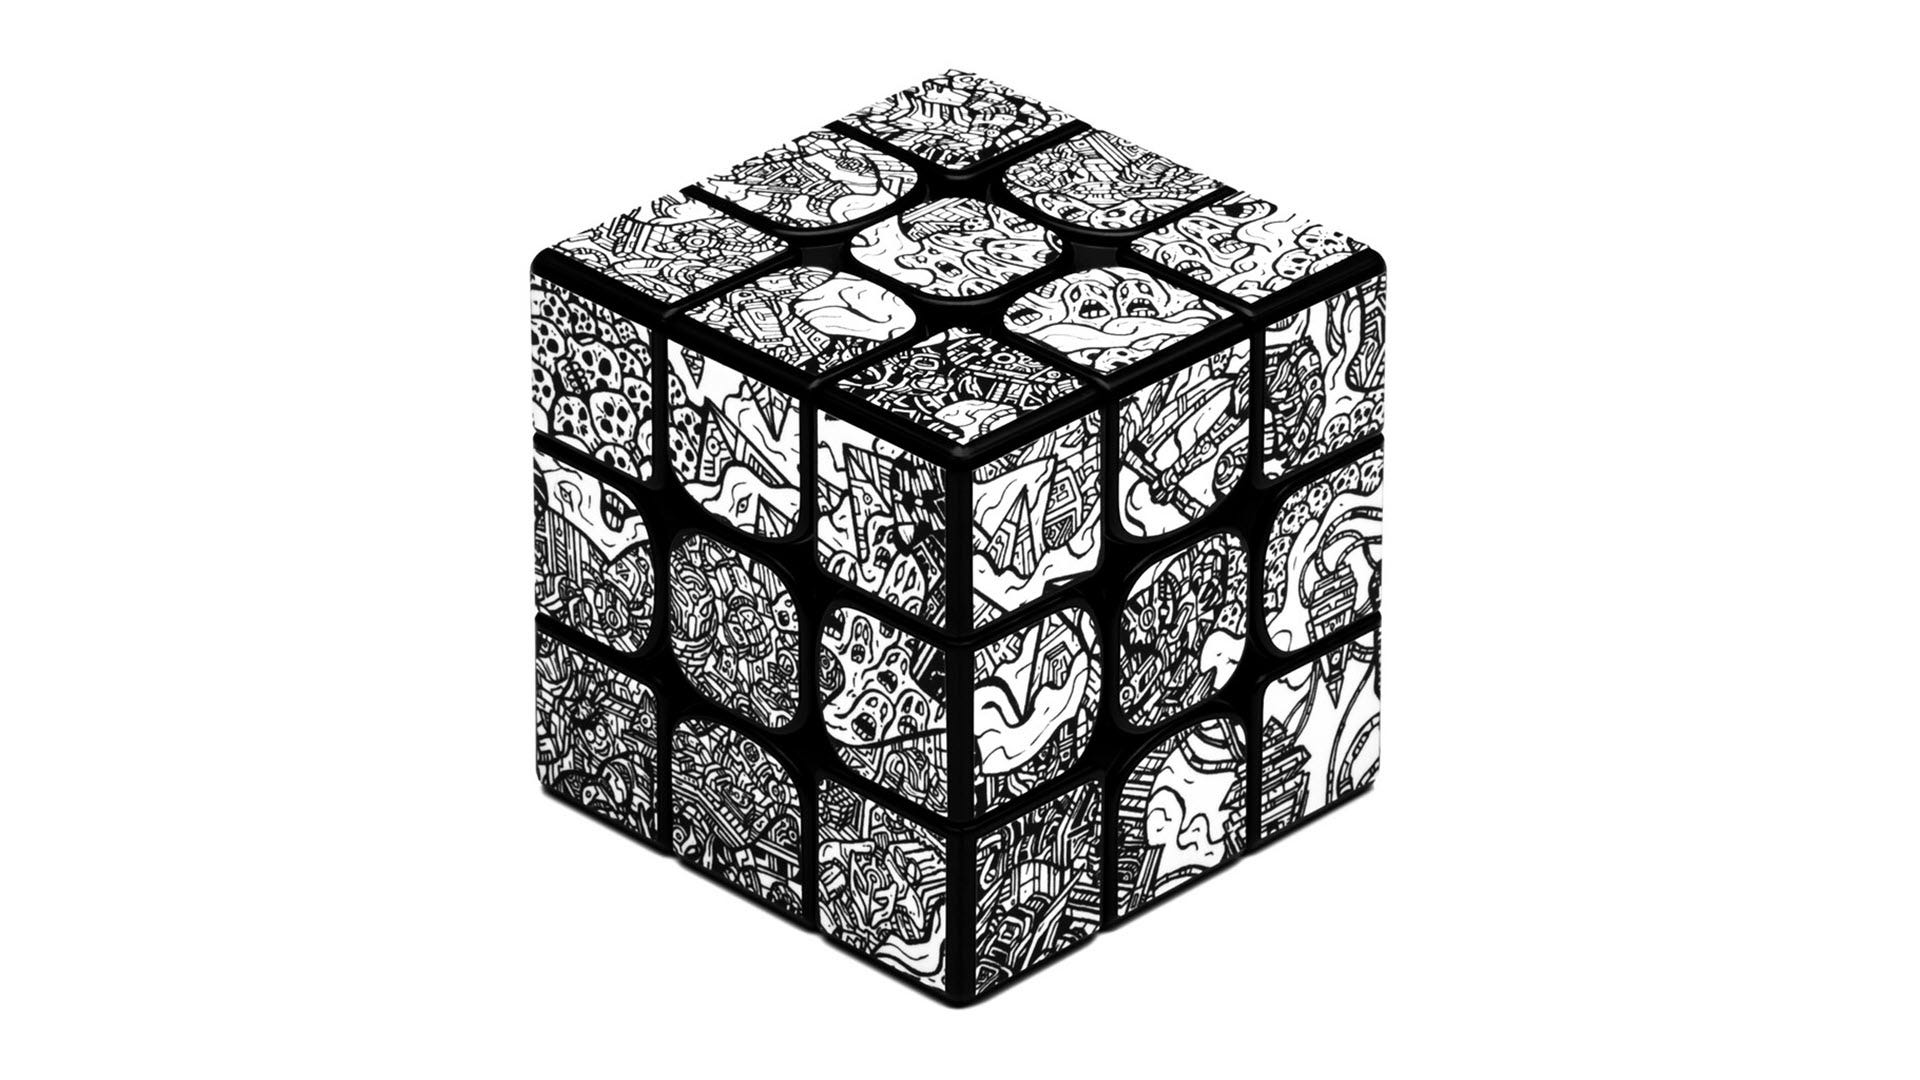 A Rubik's Cube-style puzzle covered in dbrand's Robot Camo skin.